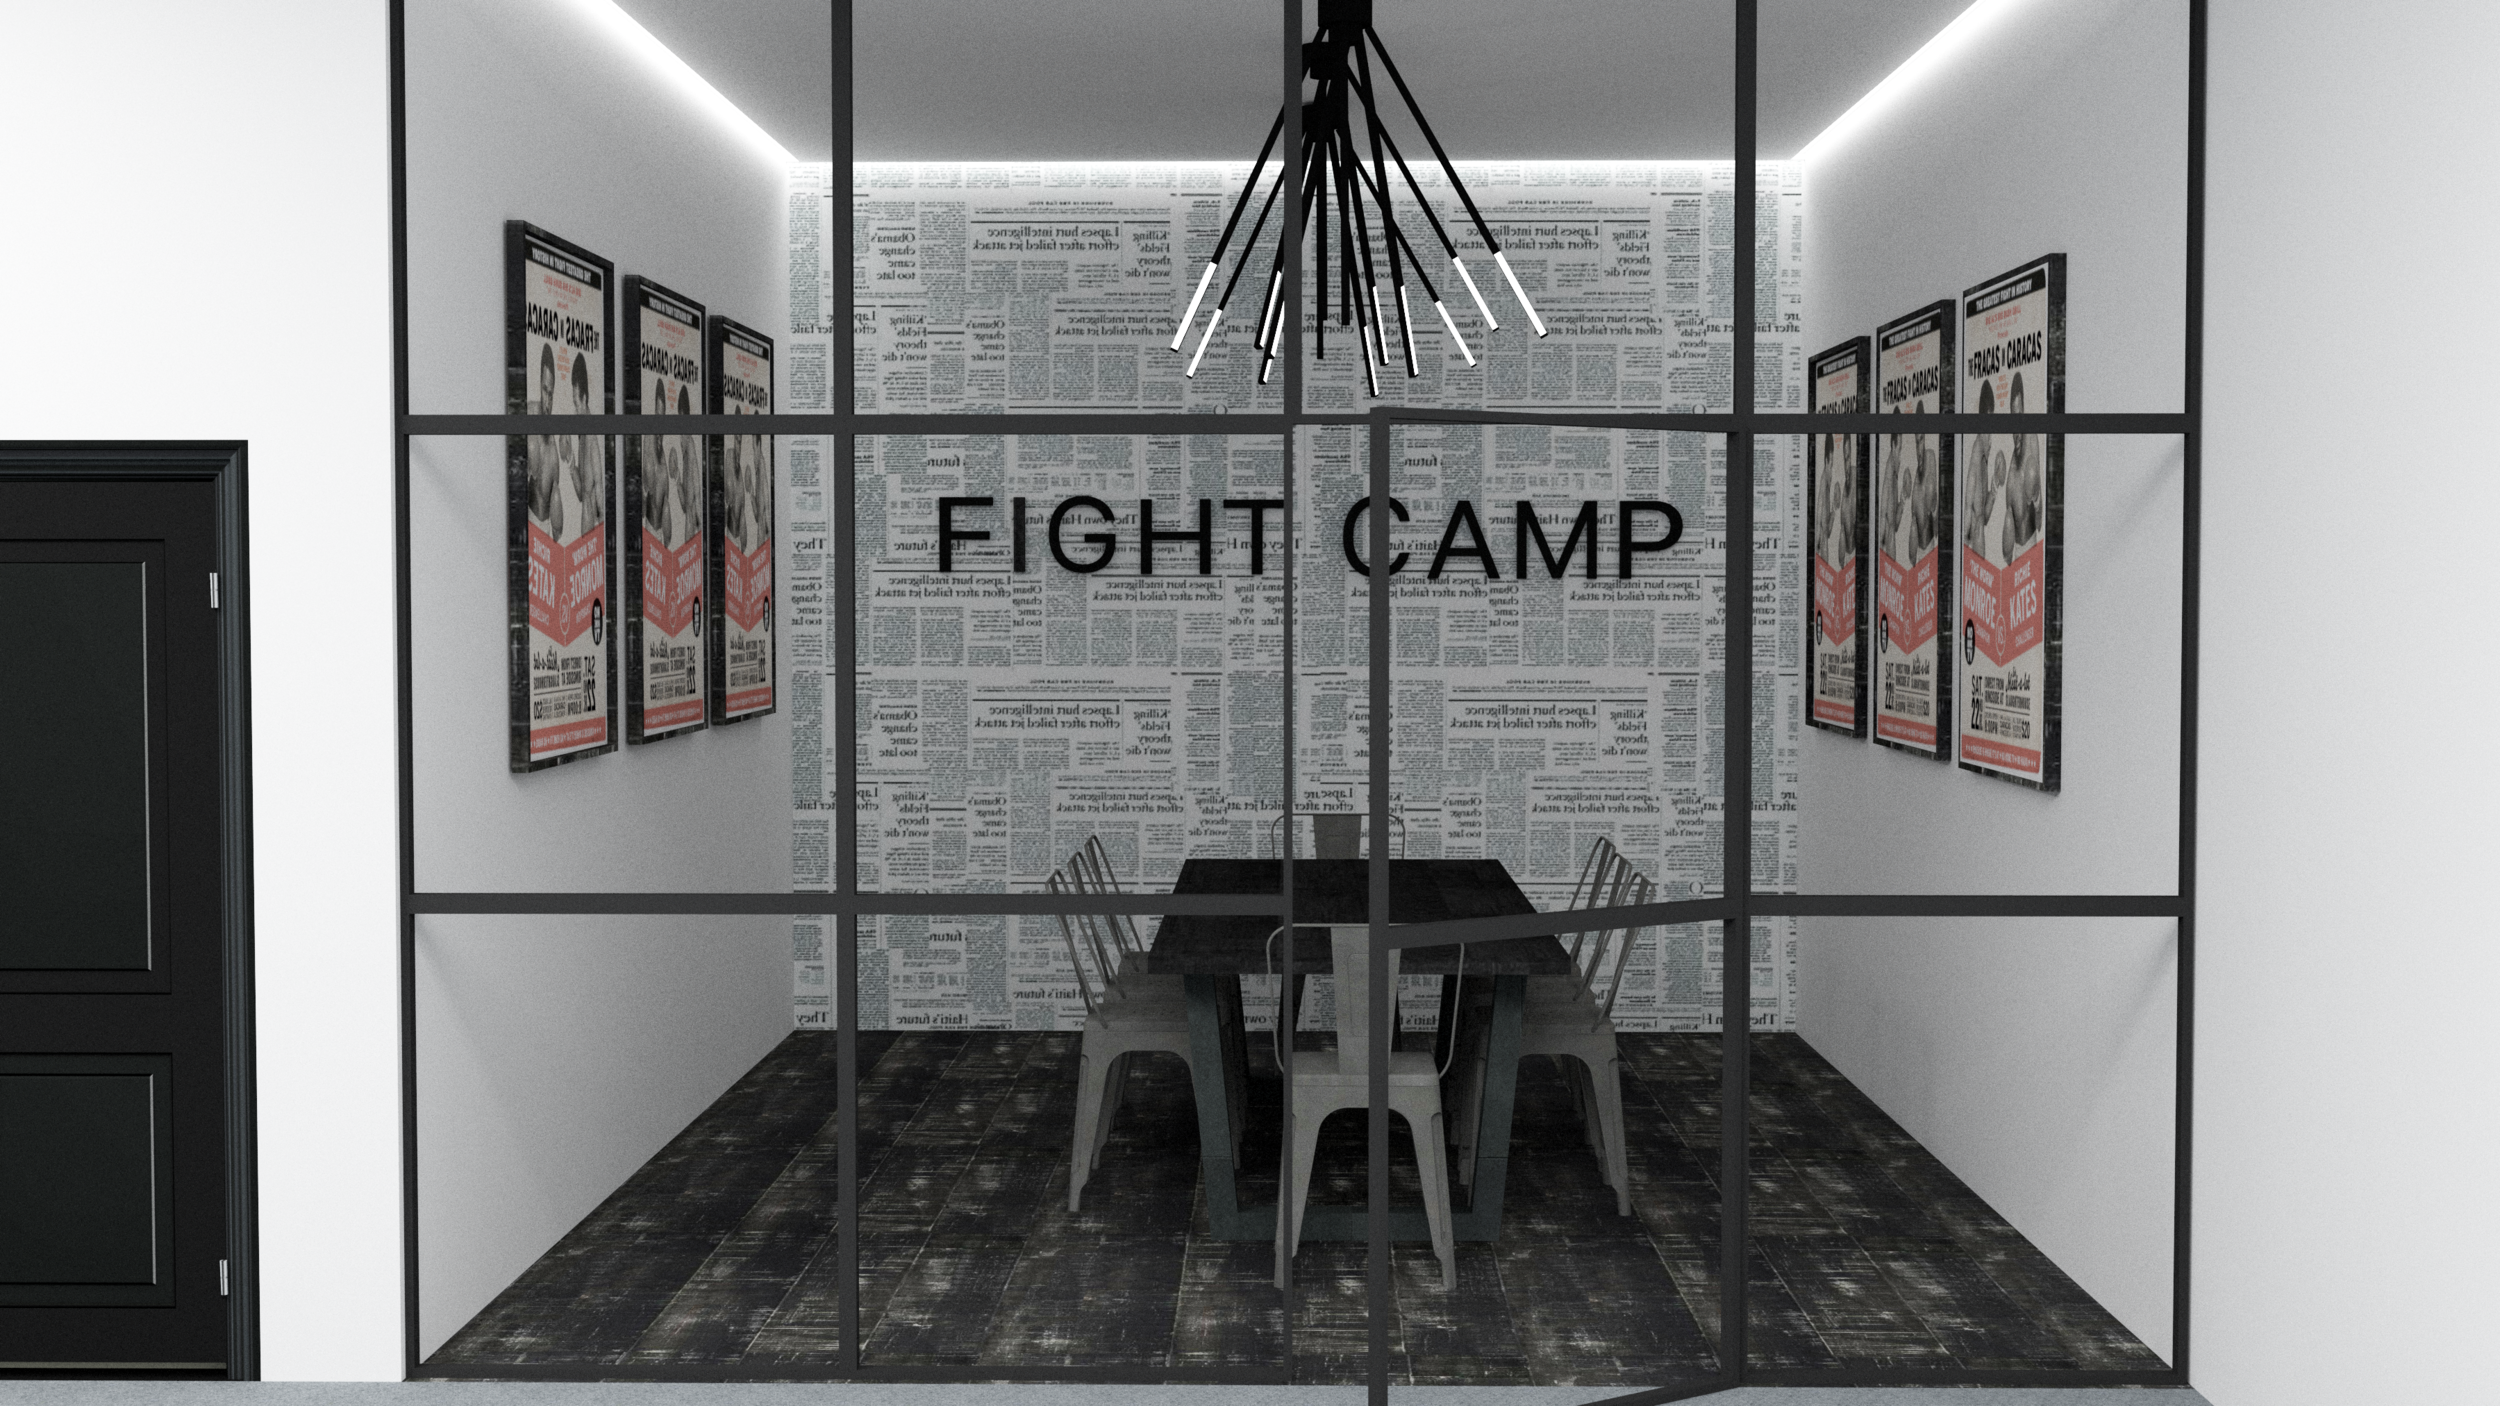 FIGHT CAMP FULL FRAM CONFERENCE ROOM COPY.png